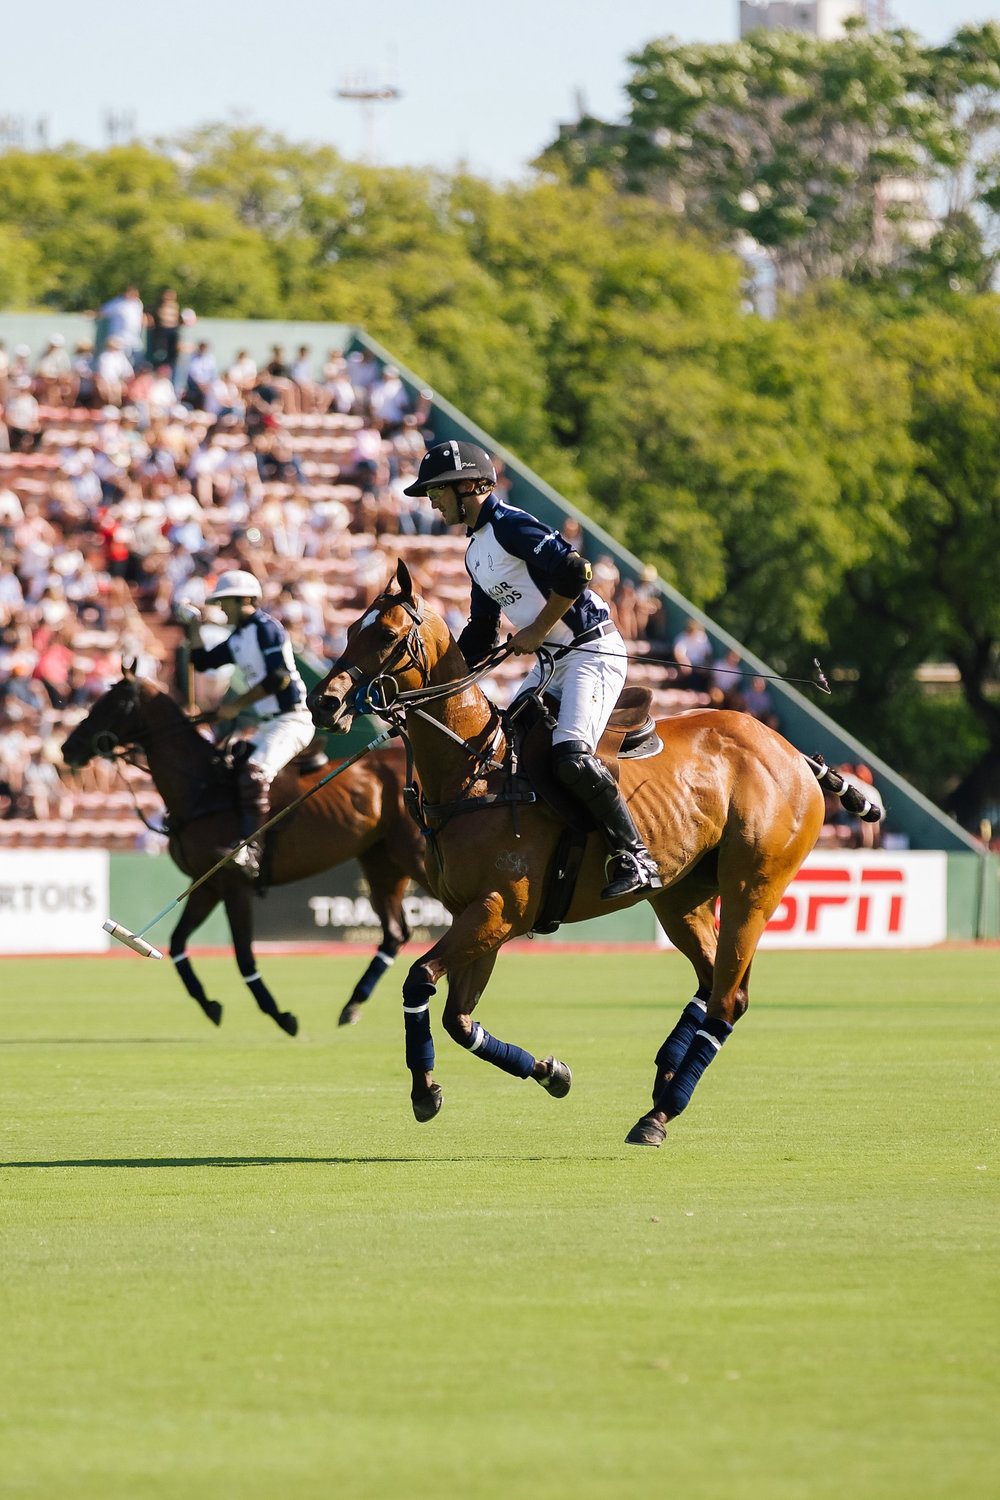 LCB STYLE ARGENTINE OPEN POLO PALERMO21.jpg